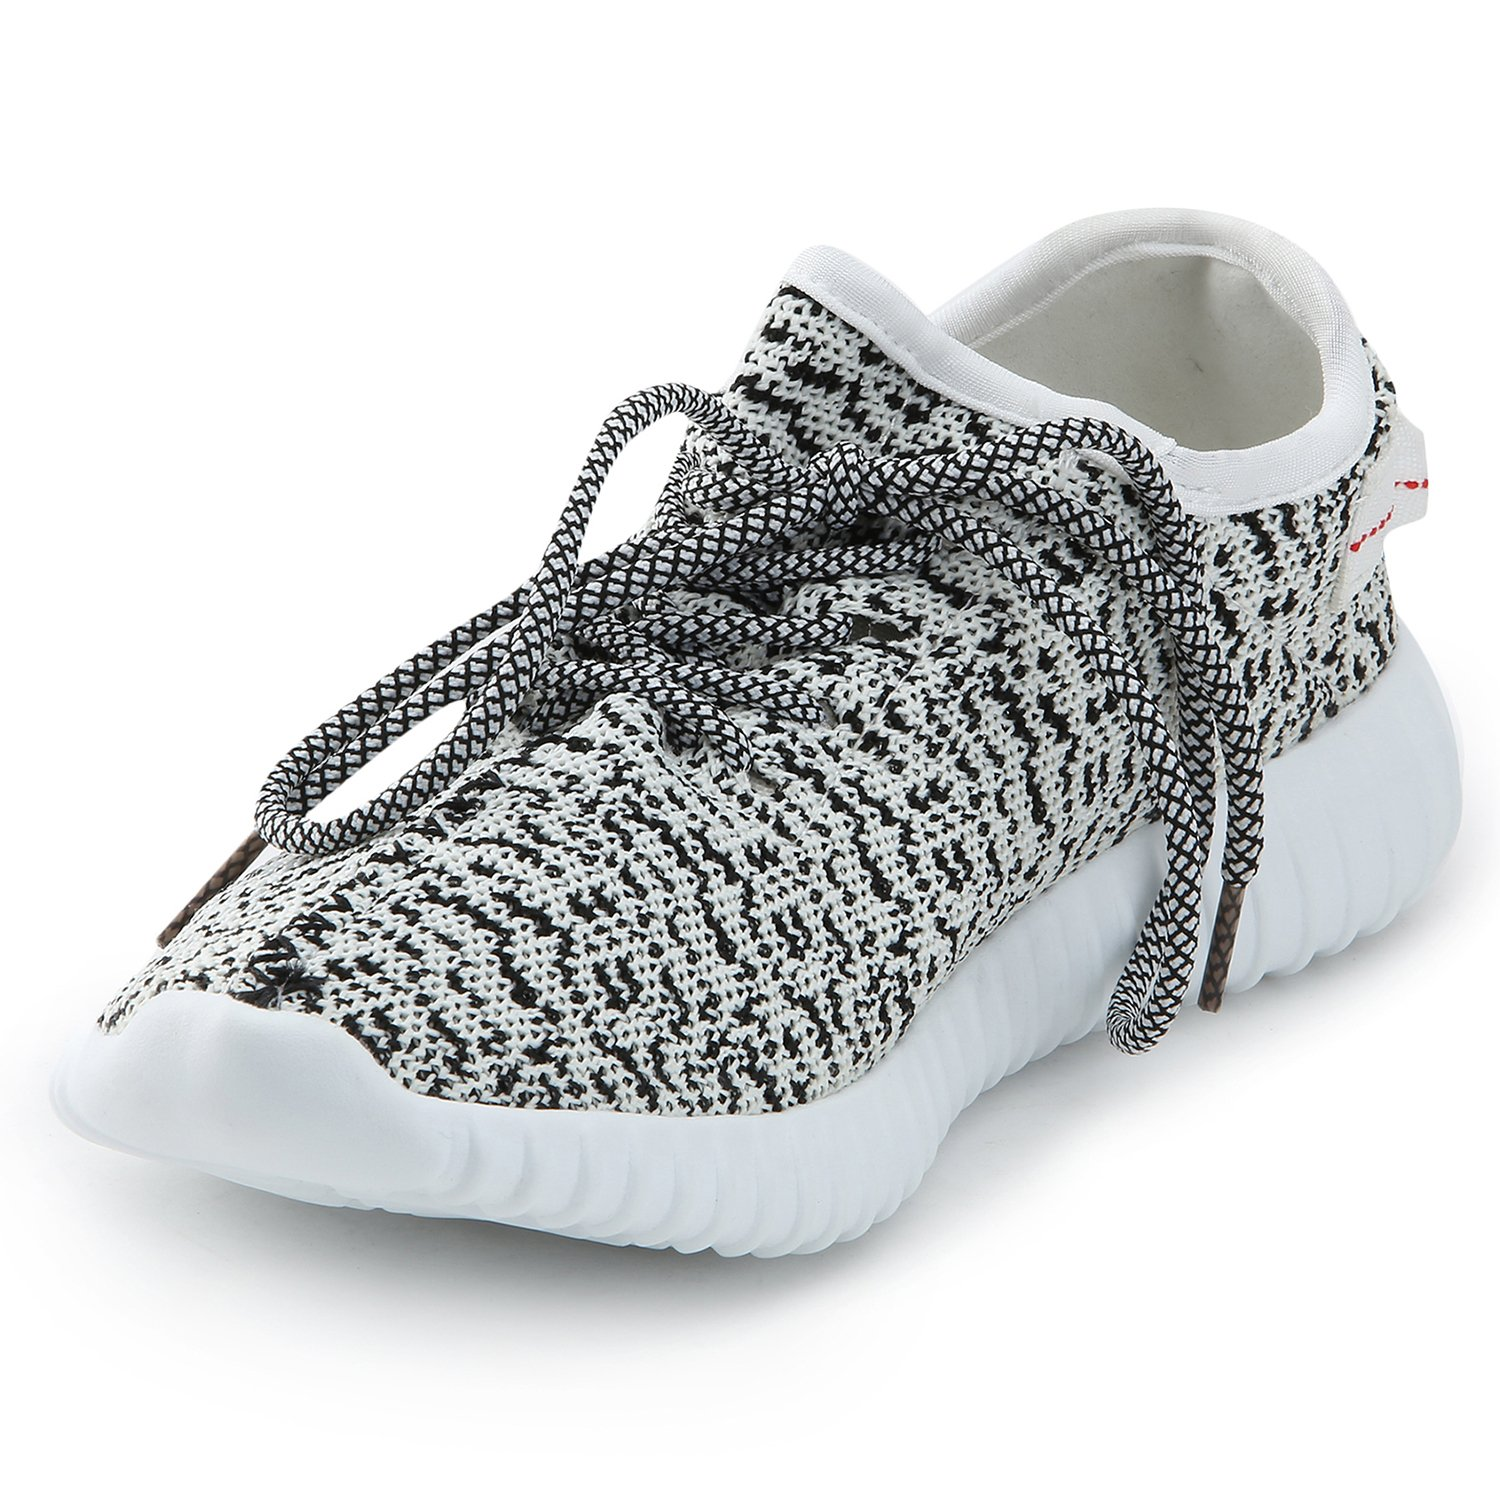 Alexis Leroy Spring Summer Women Court Fabric Athletic Moccasin Shoes